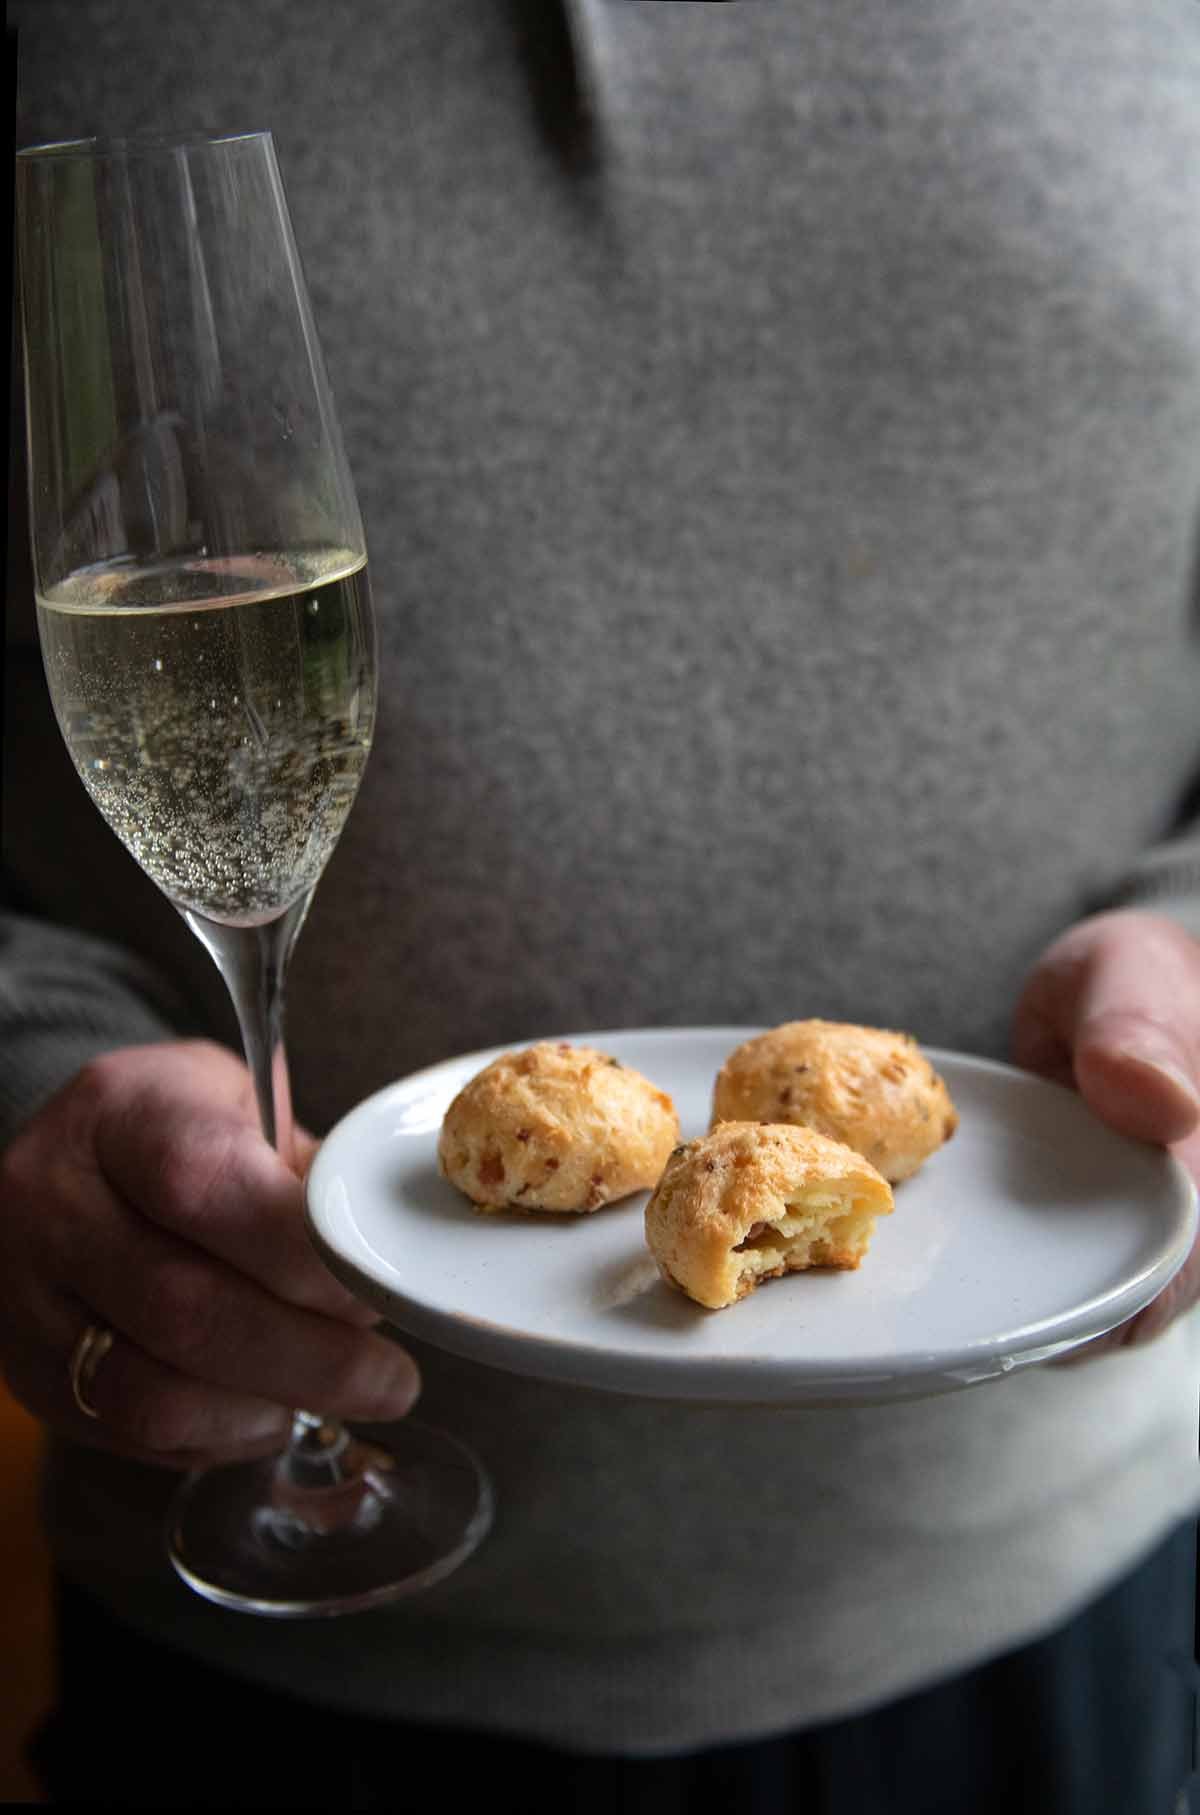 A man holding a glass of Prosecco and a plate with three gougeres.